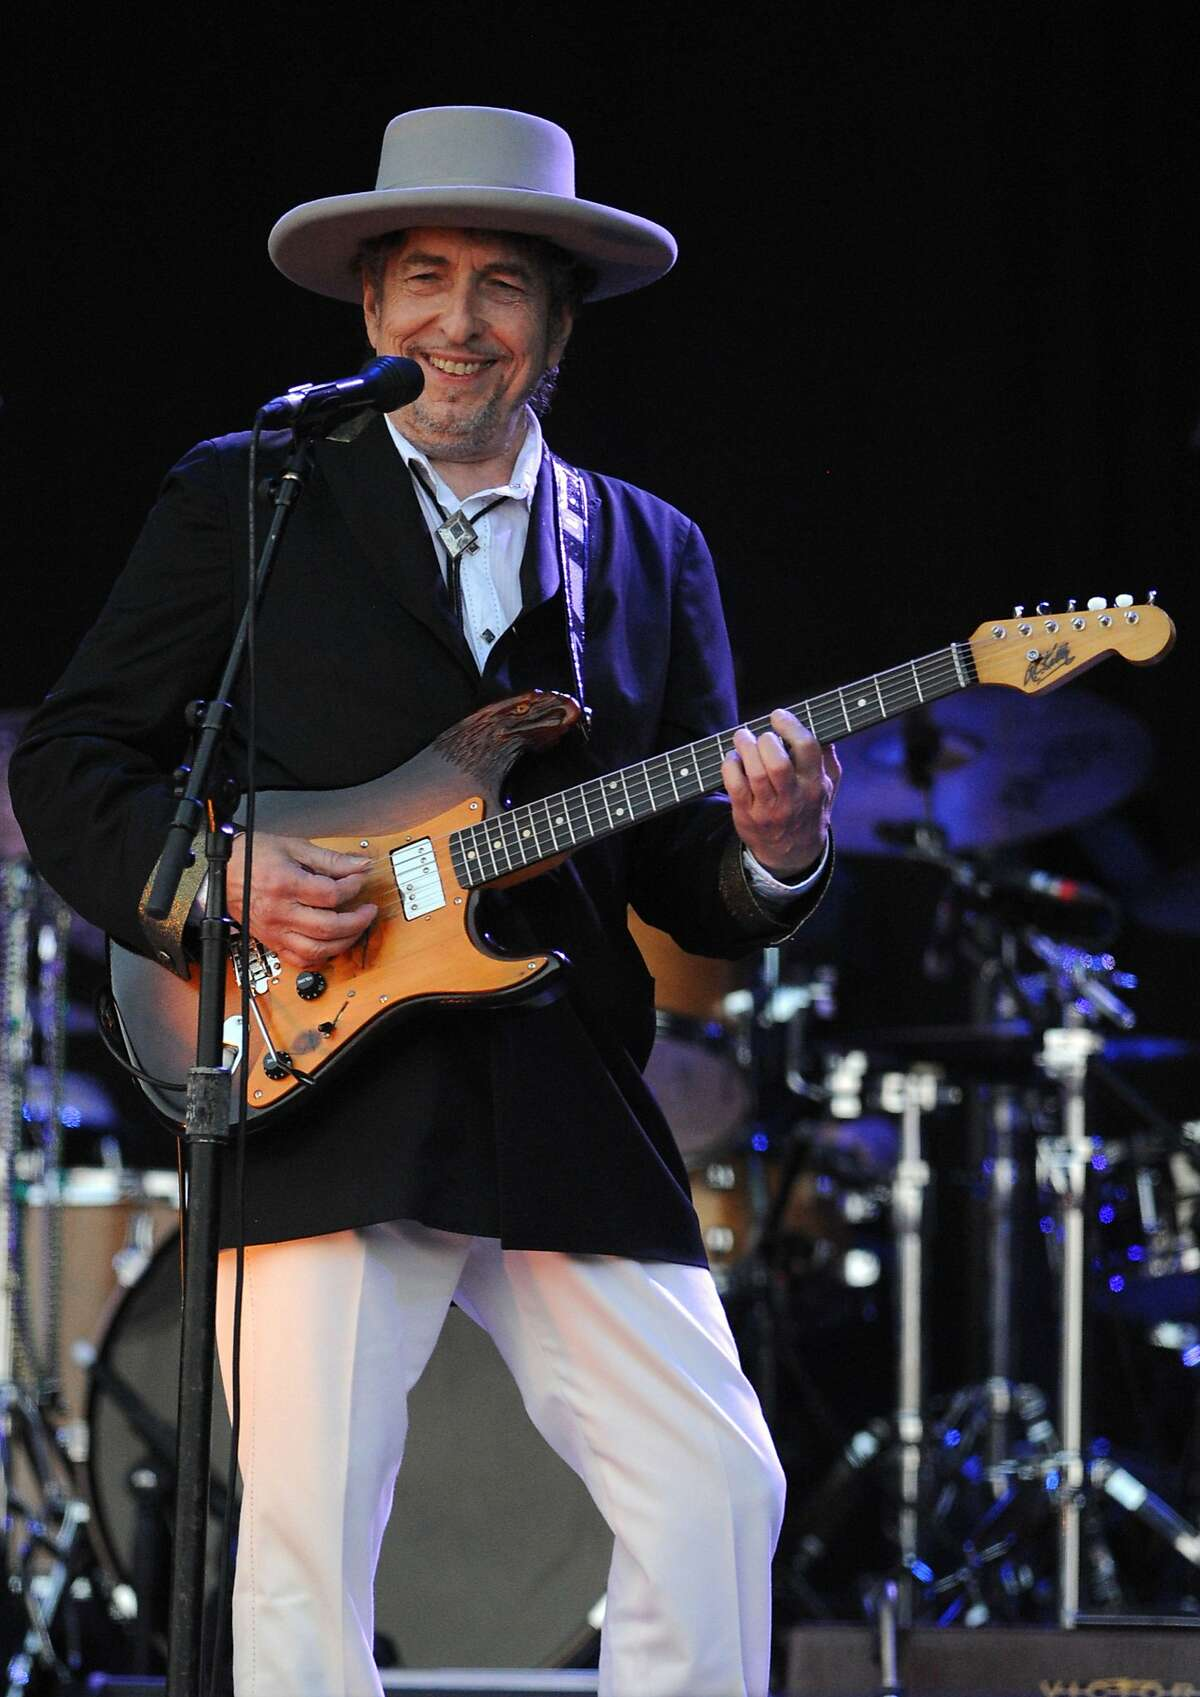 Bob Dylan will perform at the Palace Theatre in November. Click through the slideshow for more concerts and other performances coming soon.